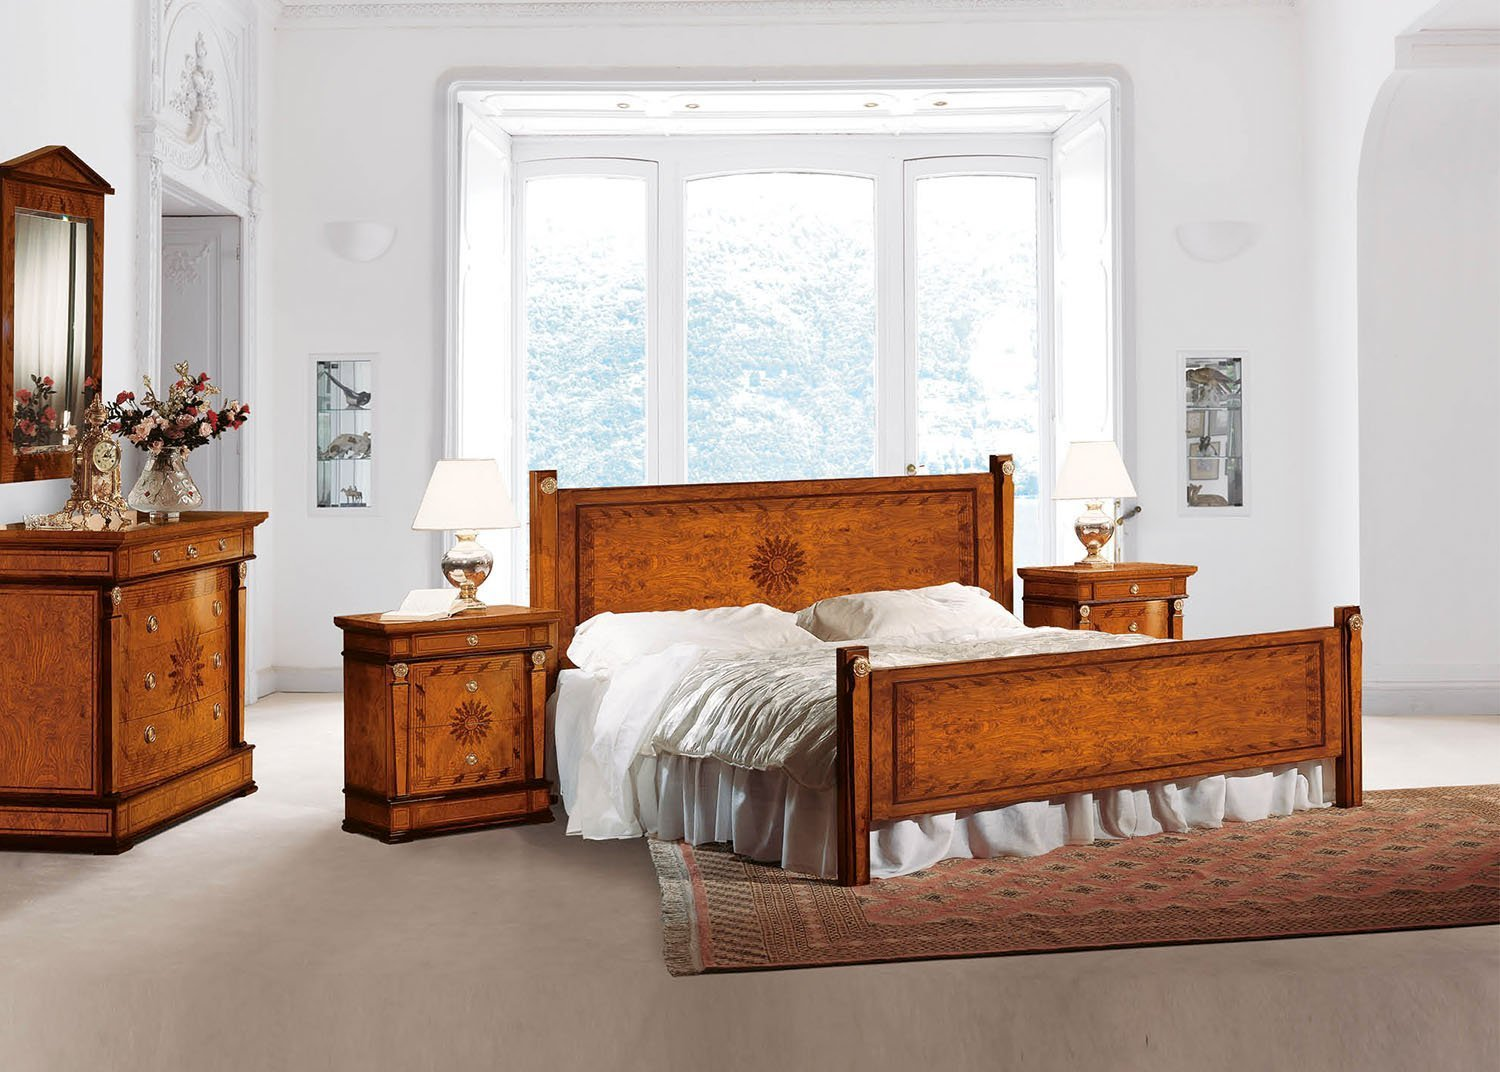 pisa italian bedroom set mobilart decor high end furniture 11905 | pisa italian bedroom set mobilart decor design furniture meubles italie italy made in fait en hand main wood rosewood quality 8